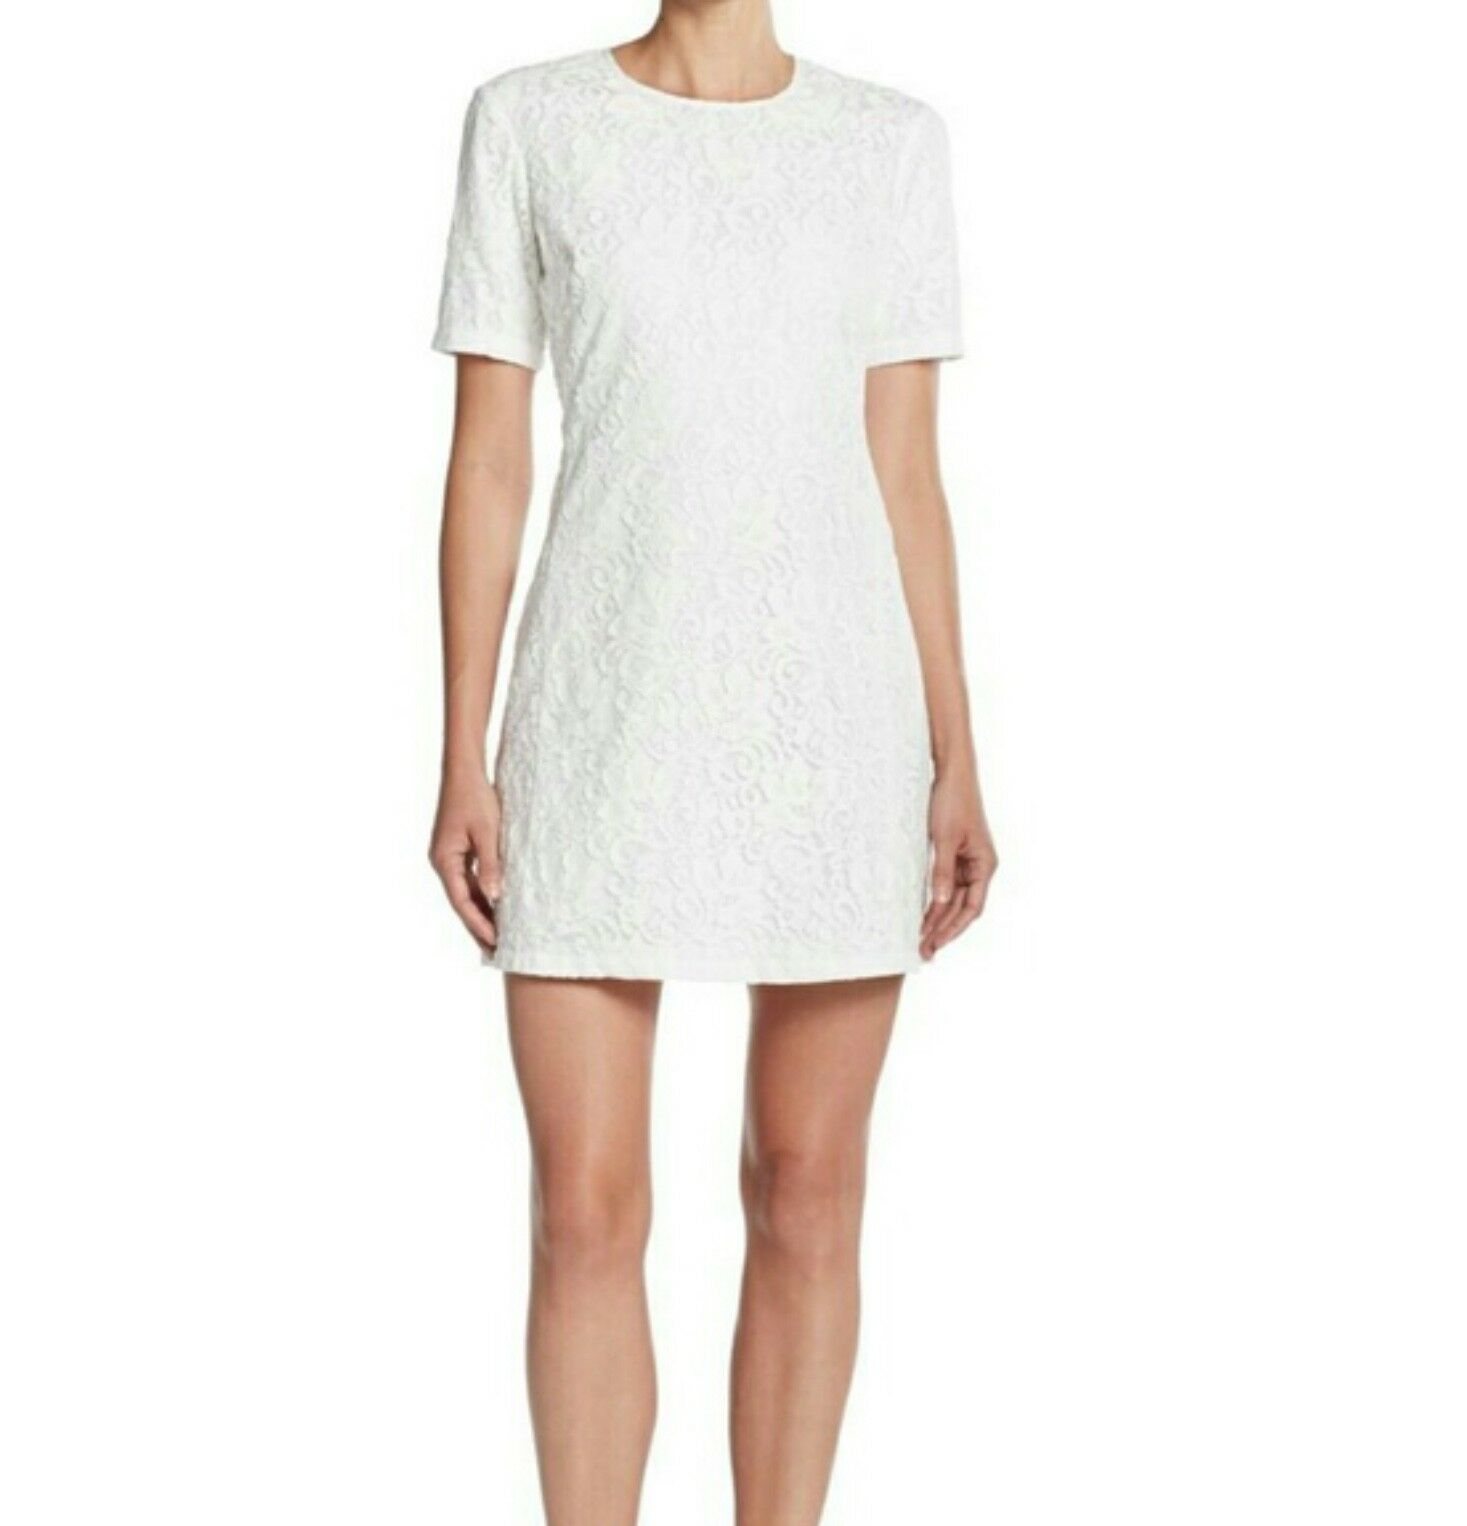 Theory Dananline LC Lace Short Sleeve Dress 6 (Cream Ivory)